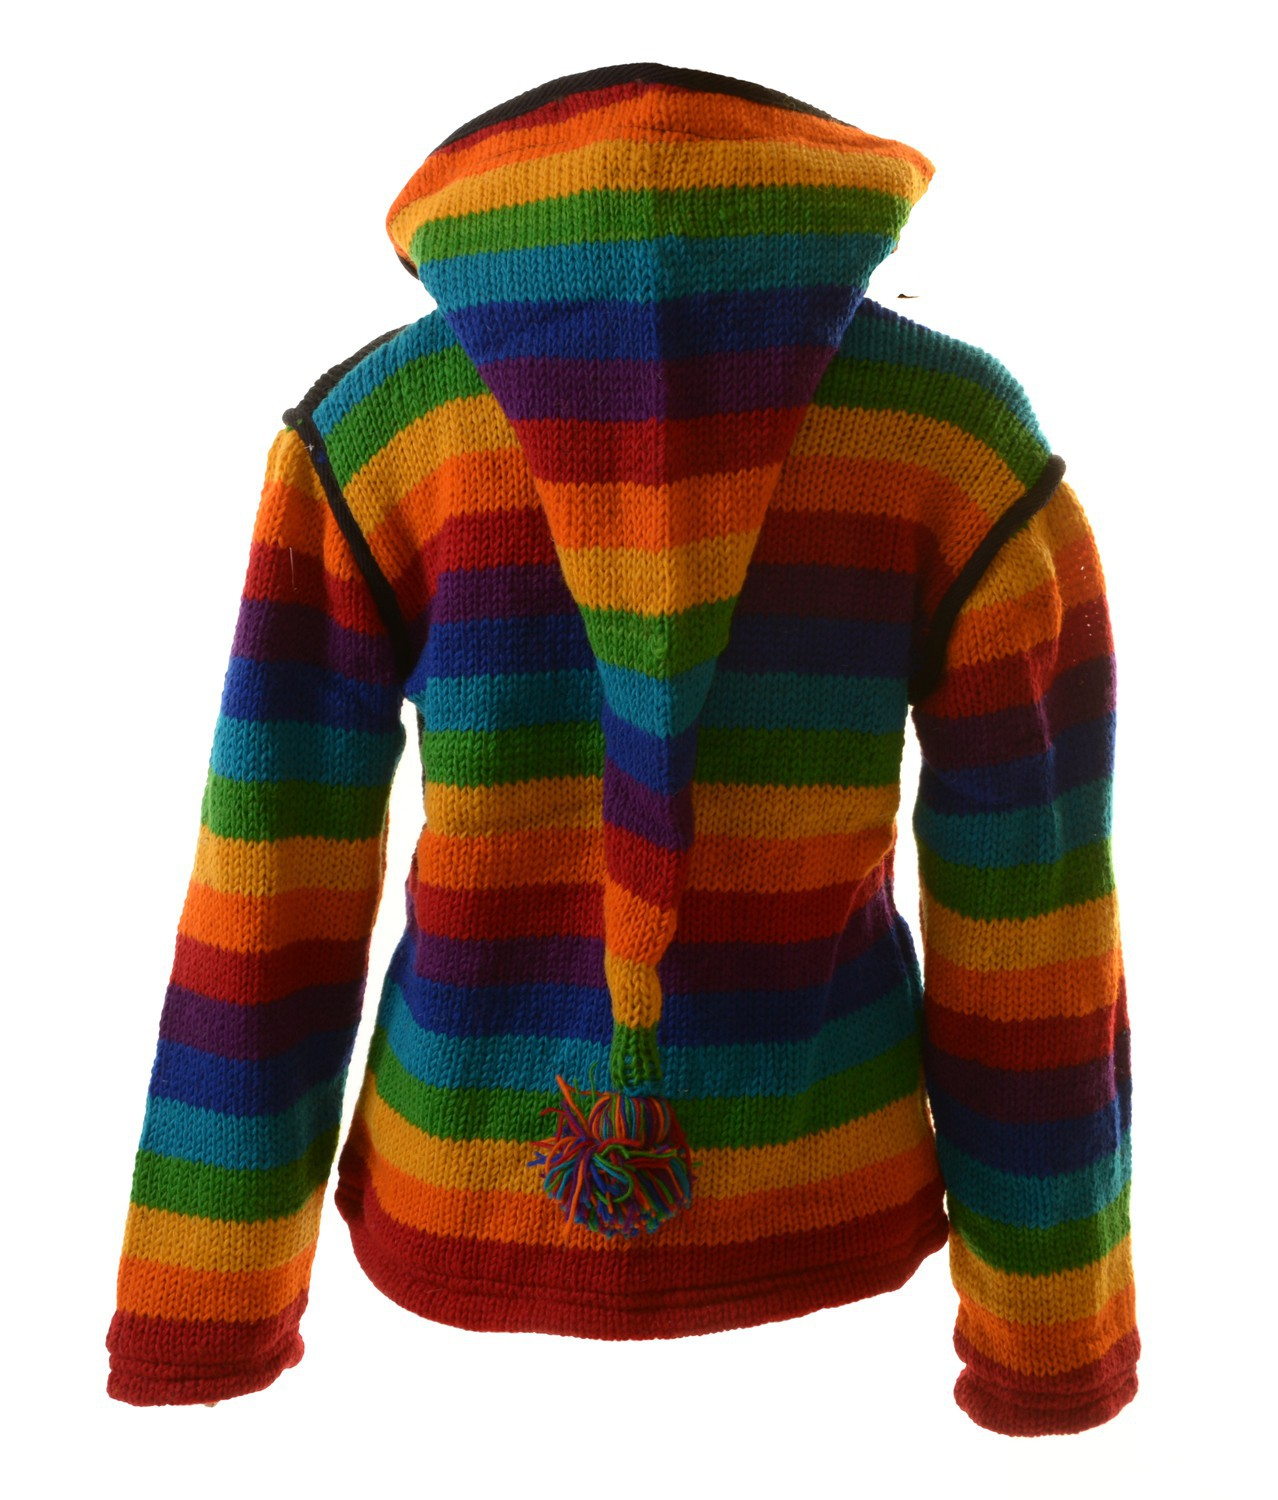 damen regenbogen strickjacke goa wolle jacke mit fleecefutter und zipfelkapuze ebay. Black Bedroom Furniture Sets. Home Design Ideas